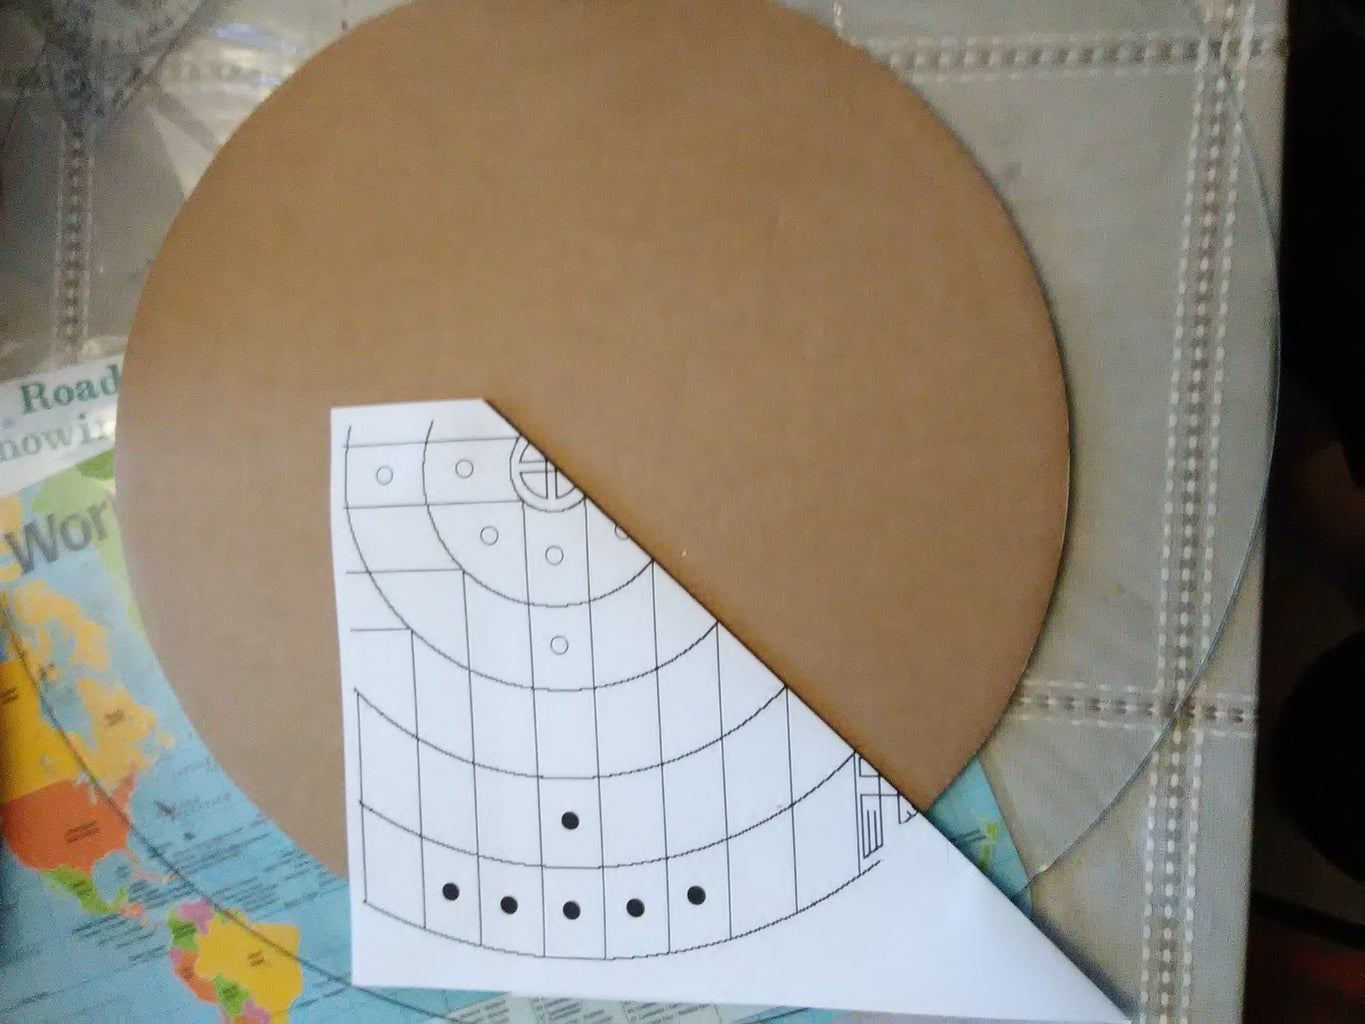 Laying Out the Circles